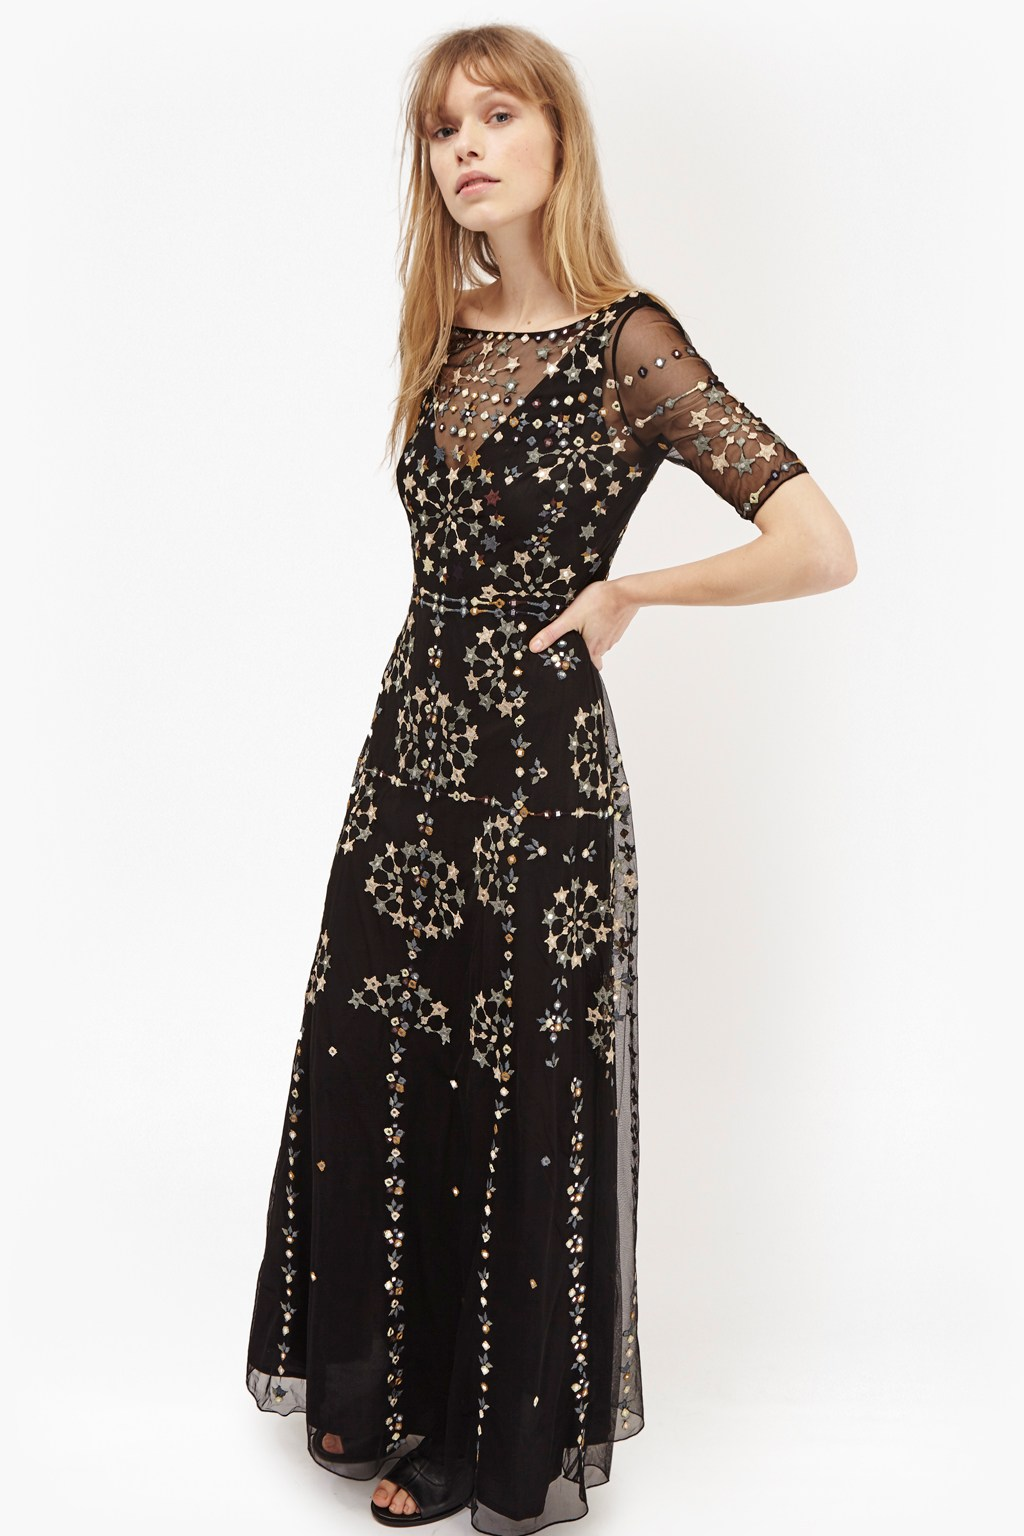 Shop womens maxi dresses cheap sale online, you can buy long sleeve maxi dresses, black maxi dresses, floral maxis for women at wholesale prices on tiodegwiege.cf FREE Shipping available worldwide. High Slit Flounce Sparkly Maxi Dress - Black - 2xl. Chic Strapless Sleeveless Ombre Maxi Dress For Women - Azure - M.